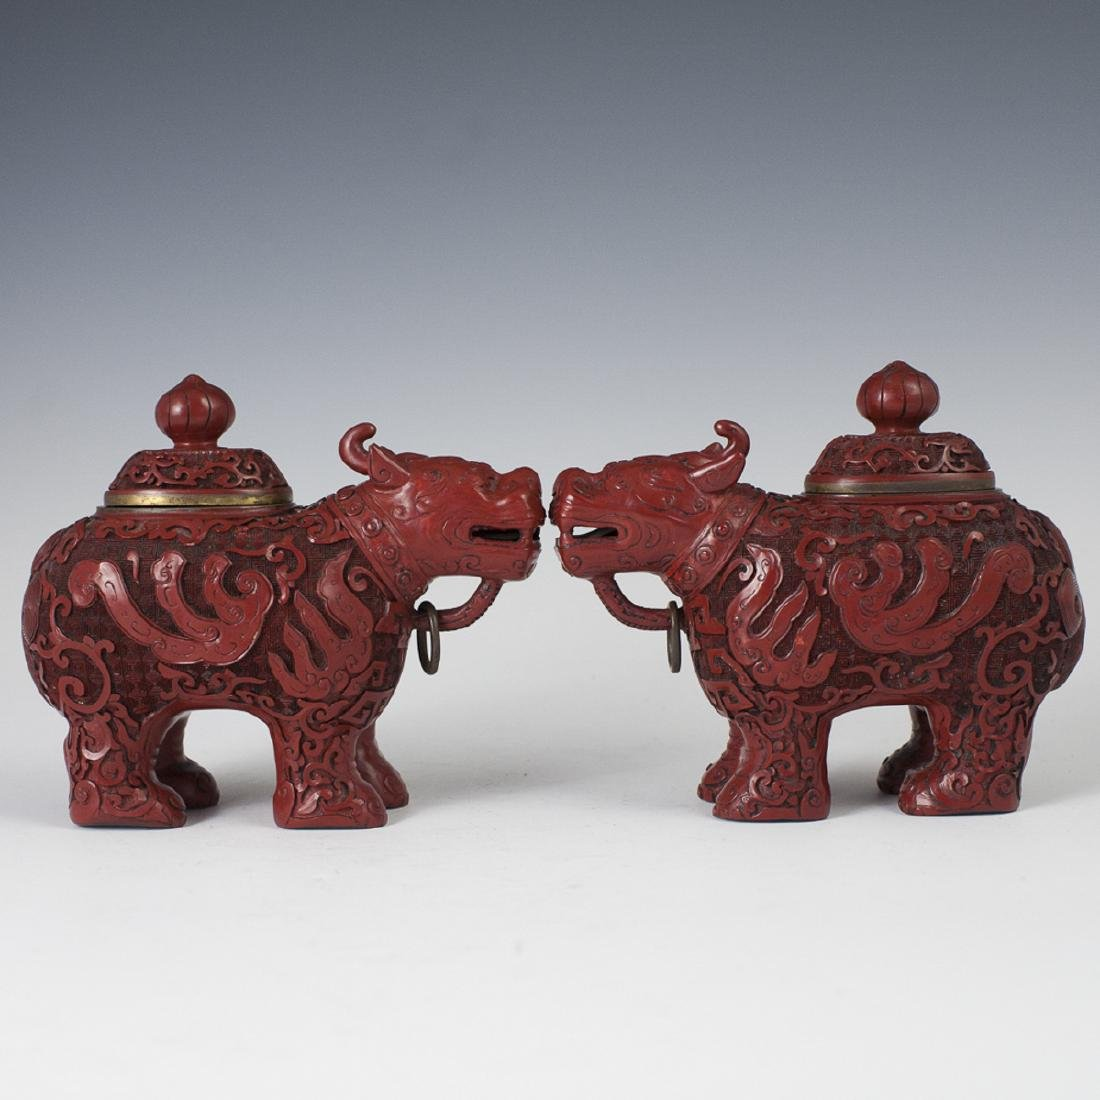 Antique Chinese Cinnabar Qilin Censers